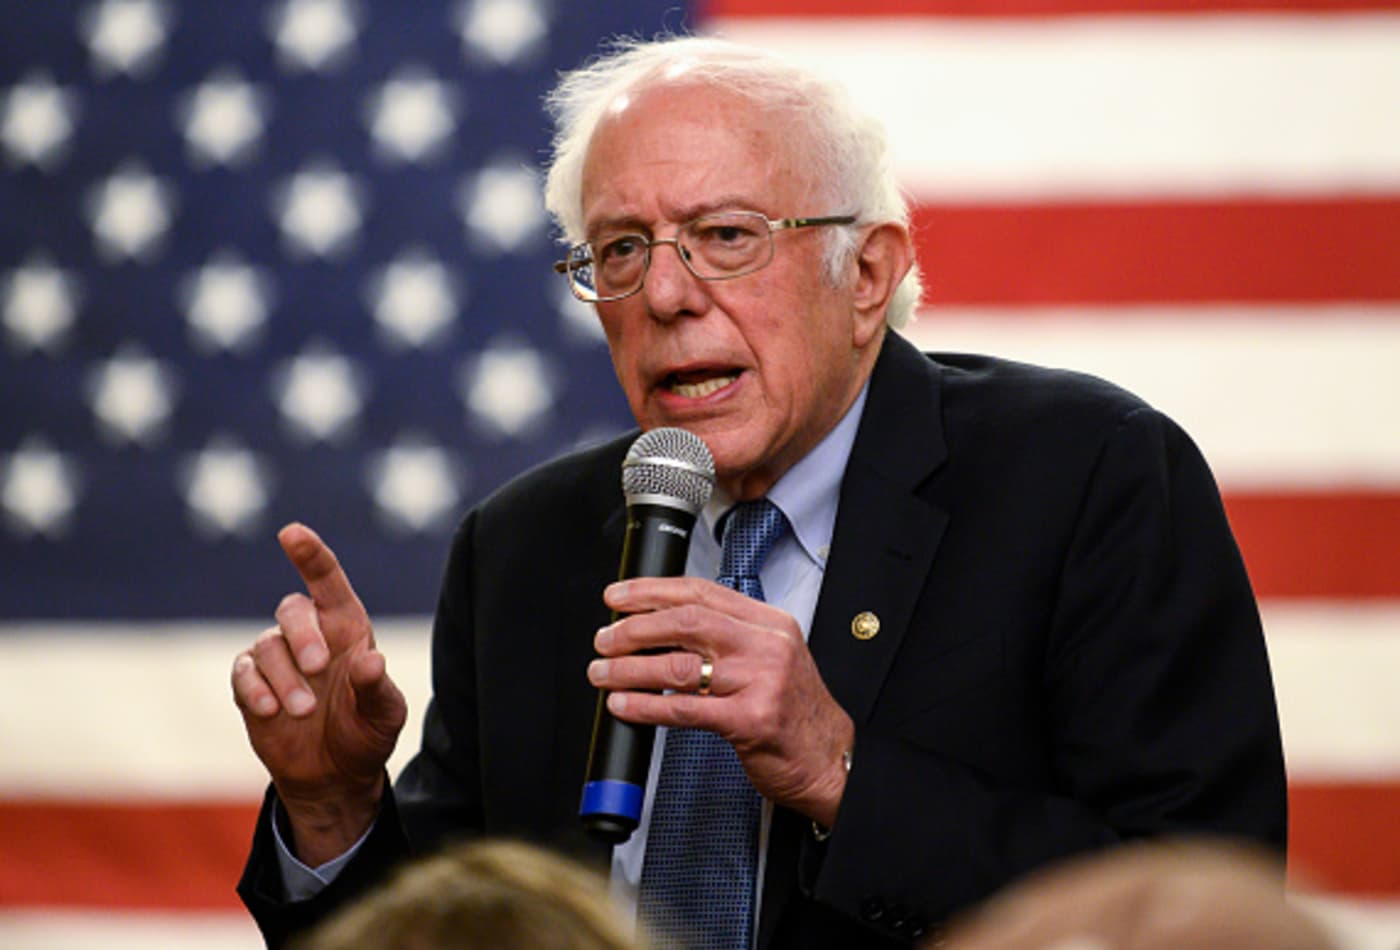 Sanders charges ahead in Iowa race, New York Times poll finds